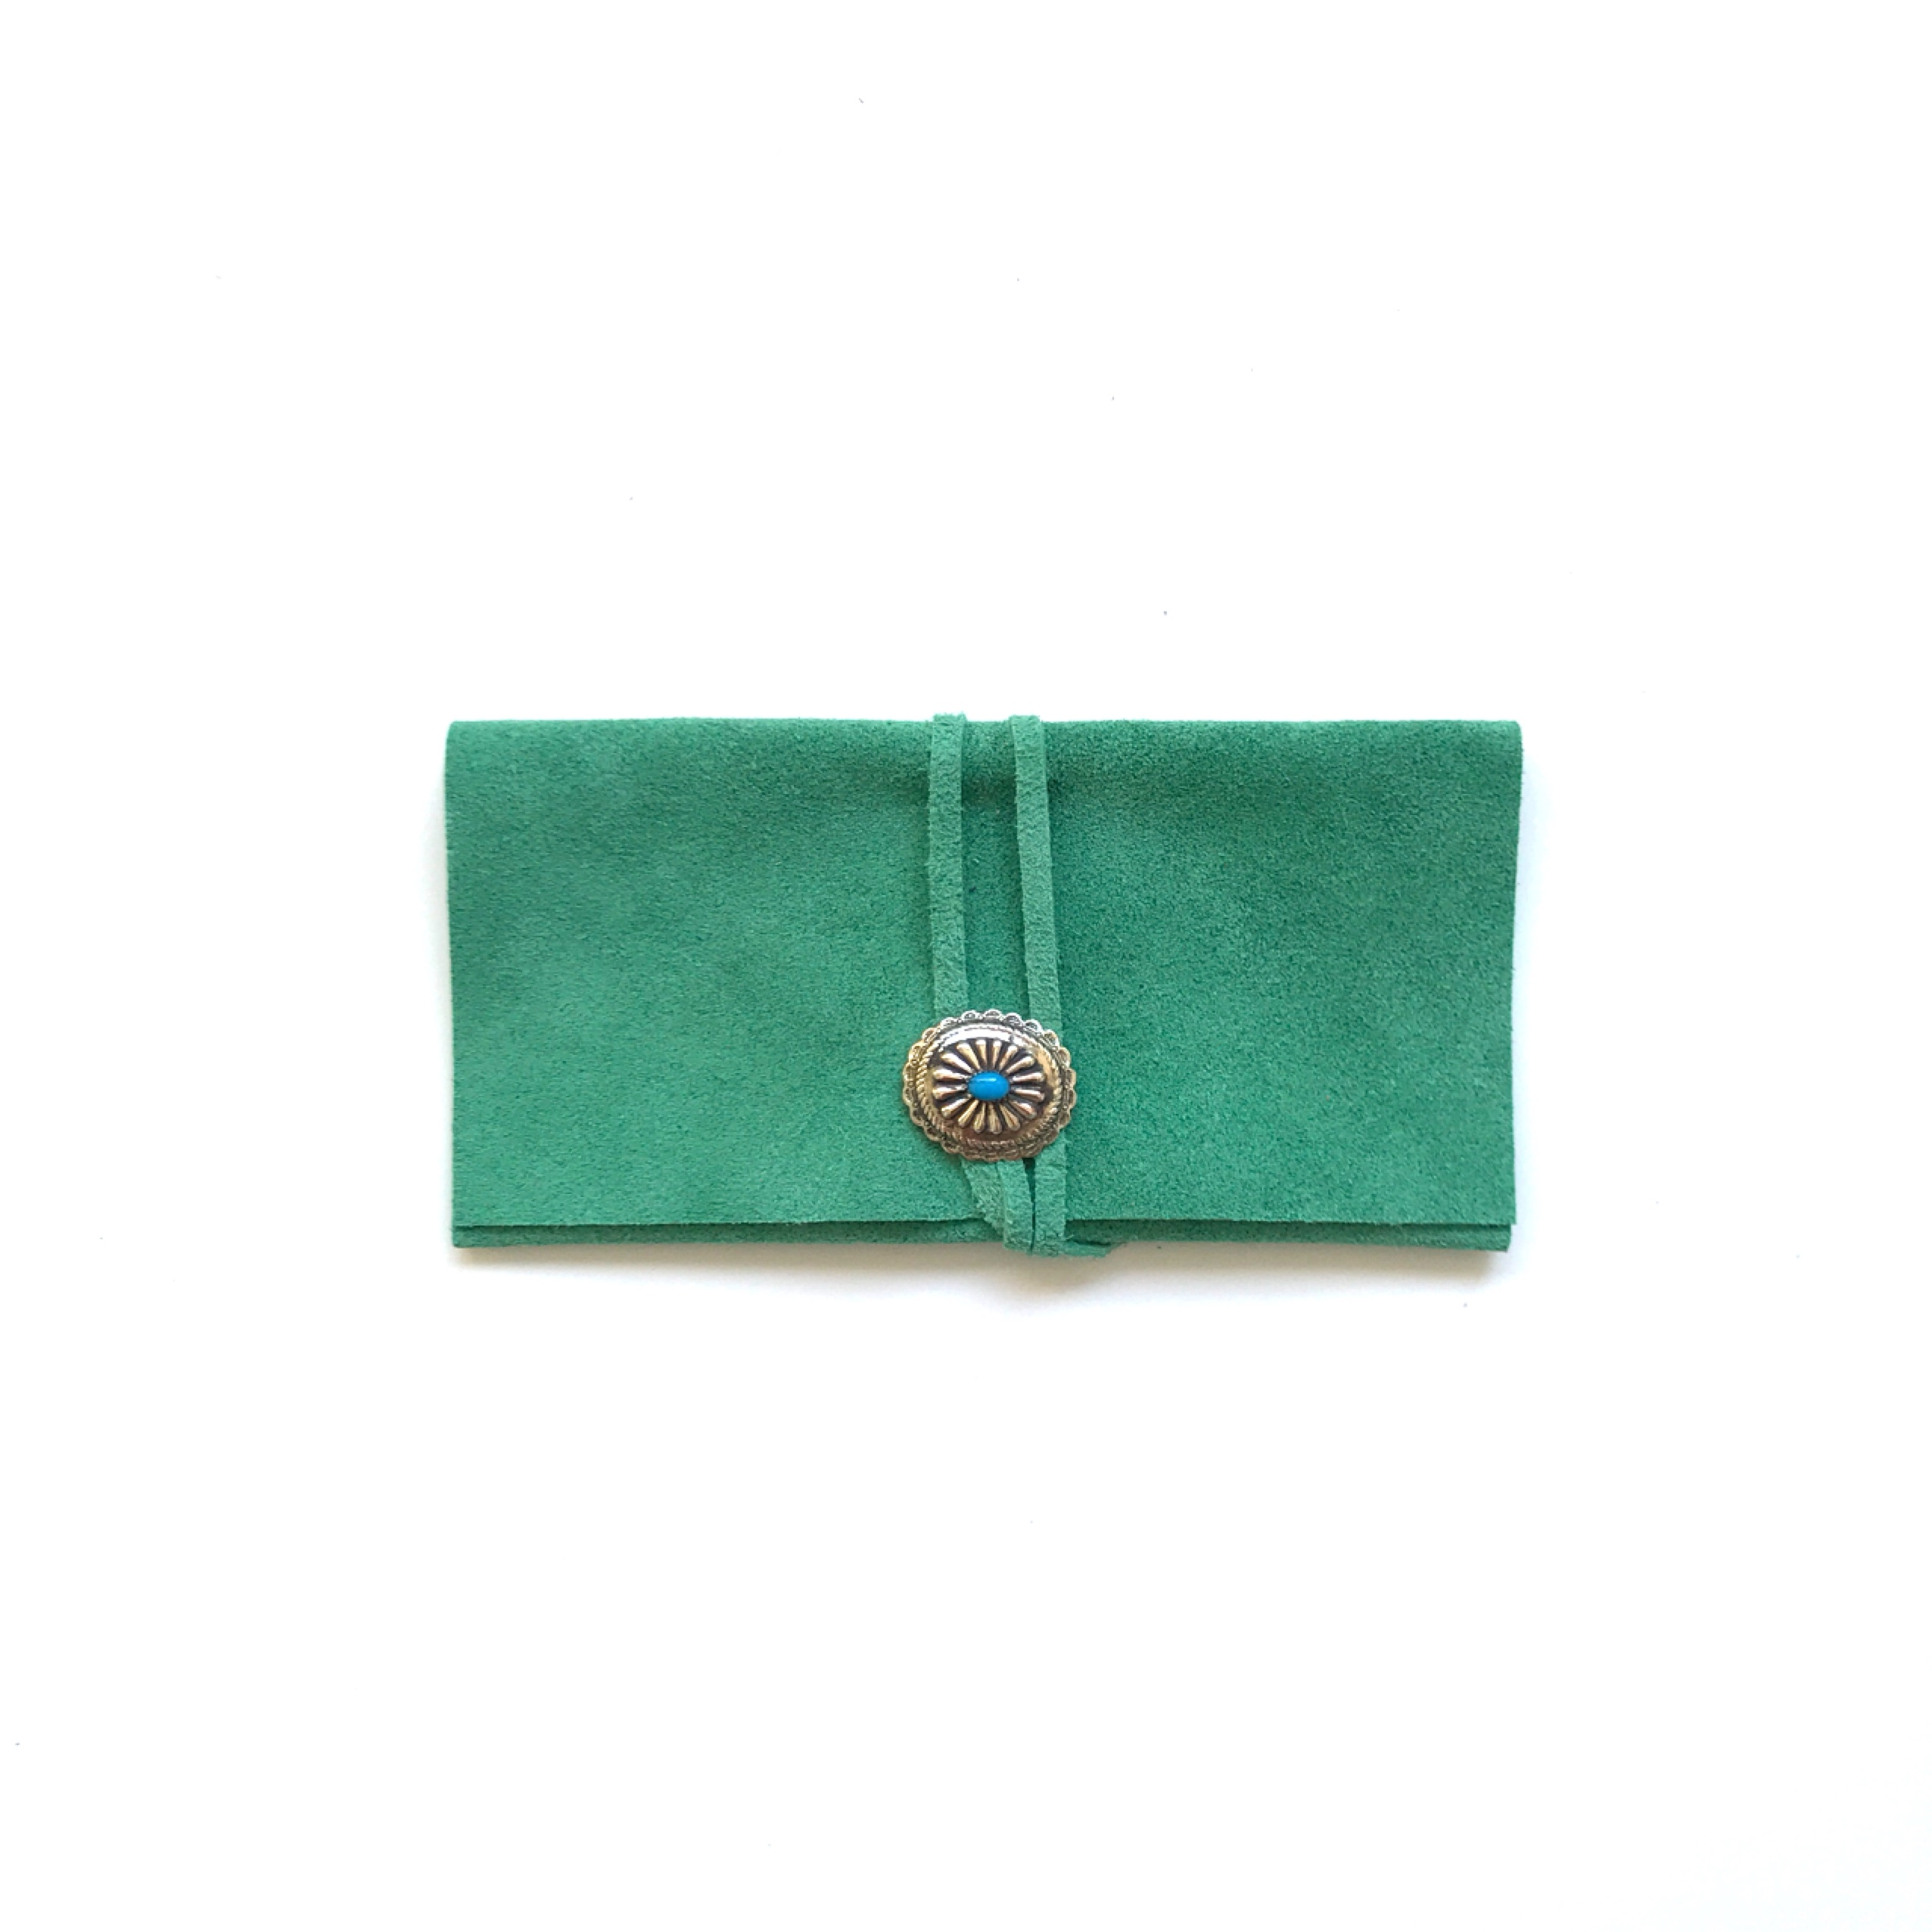 Sunglasses case -green-